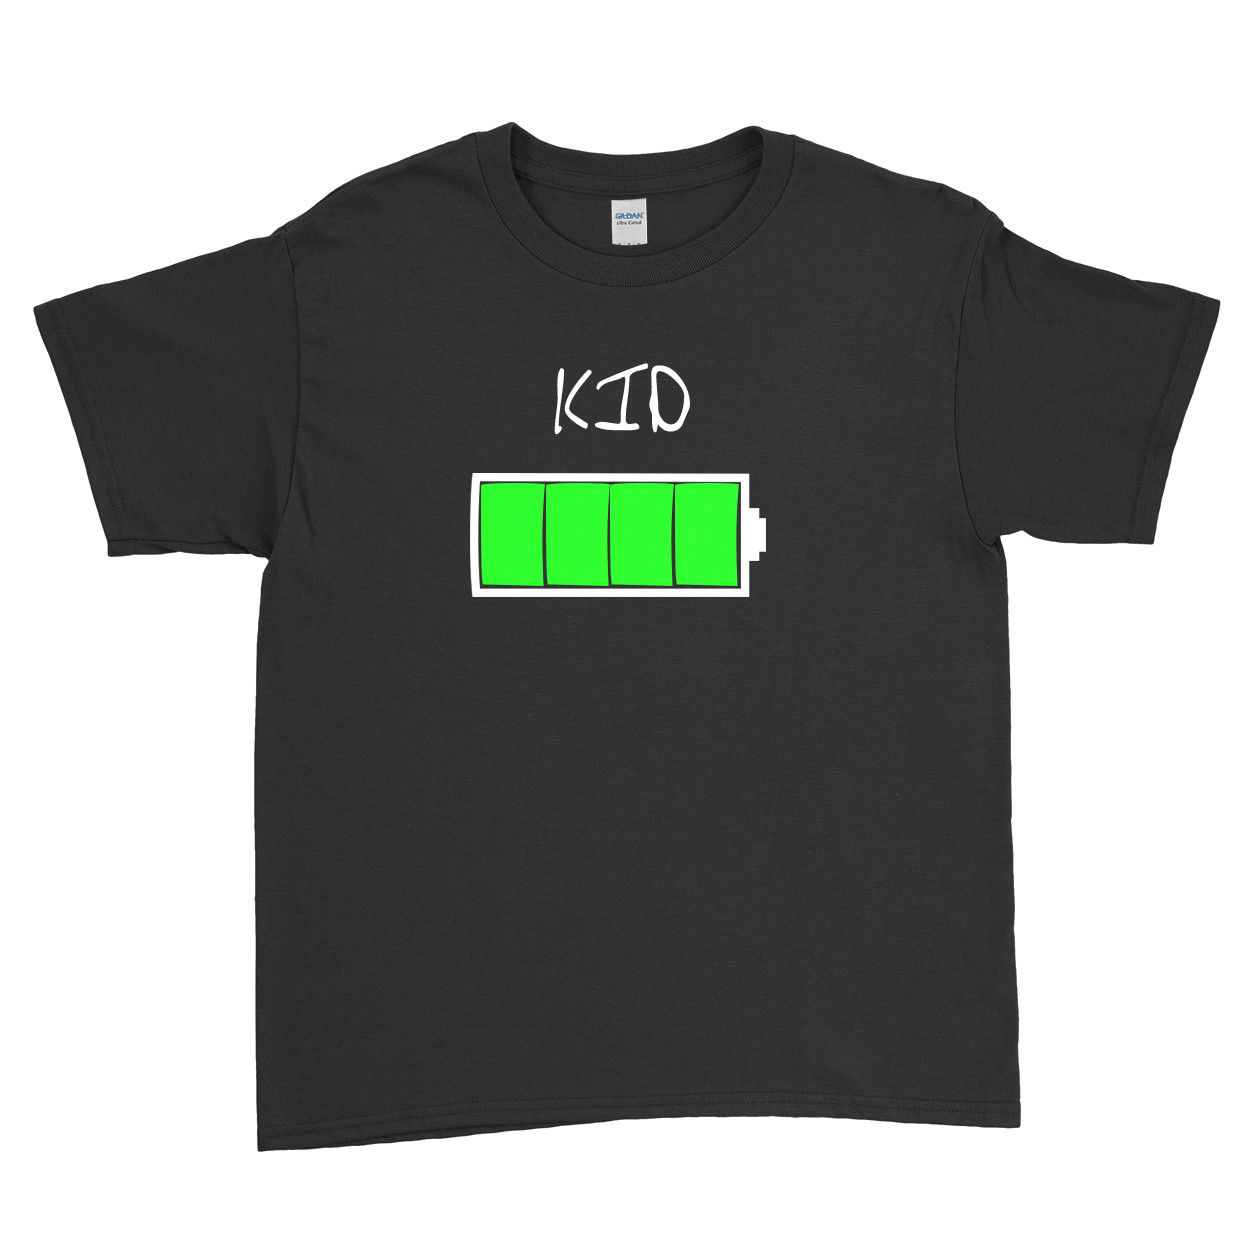 Dad Low Full Battery Icon Mommy Kid Baby Family Matching Couple Team T Shirt 100 Cotton Short Sleeve O Neck Tops Tee Shirts in T Shirts from Men 39 s Clothing